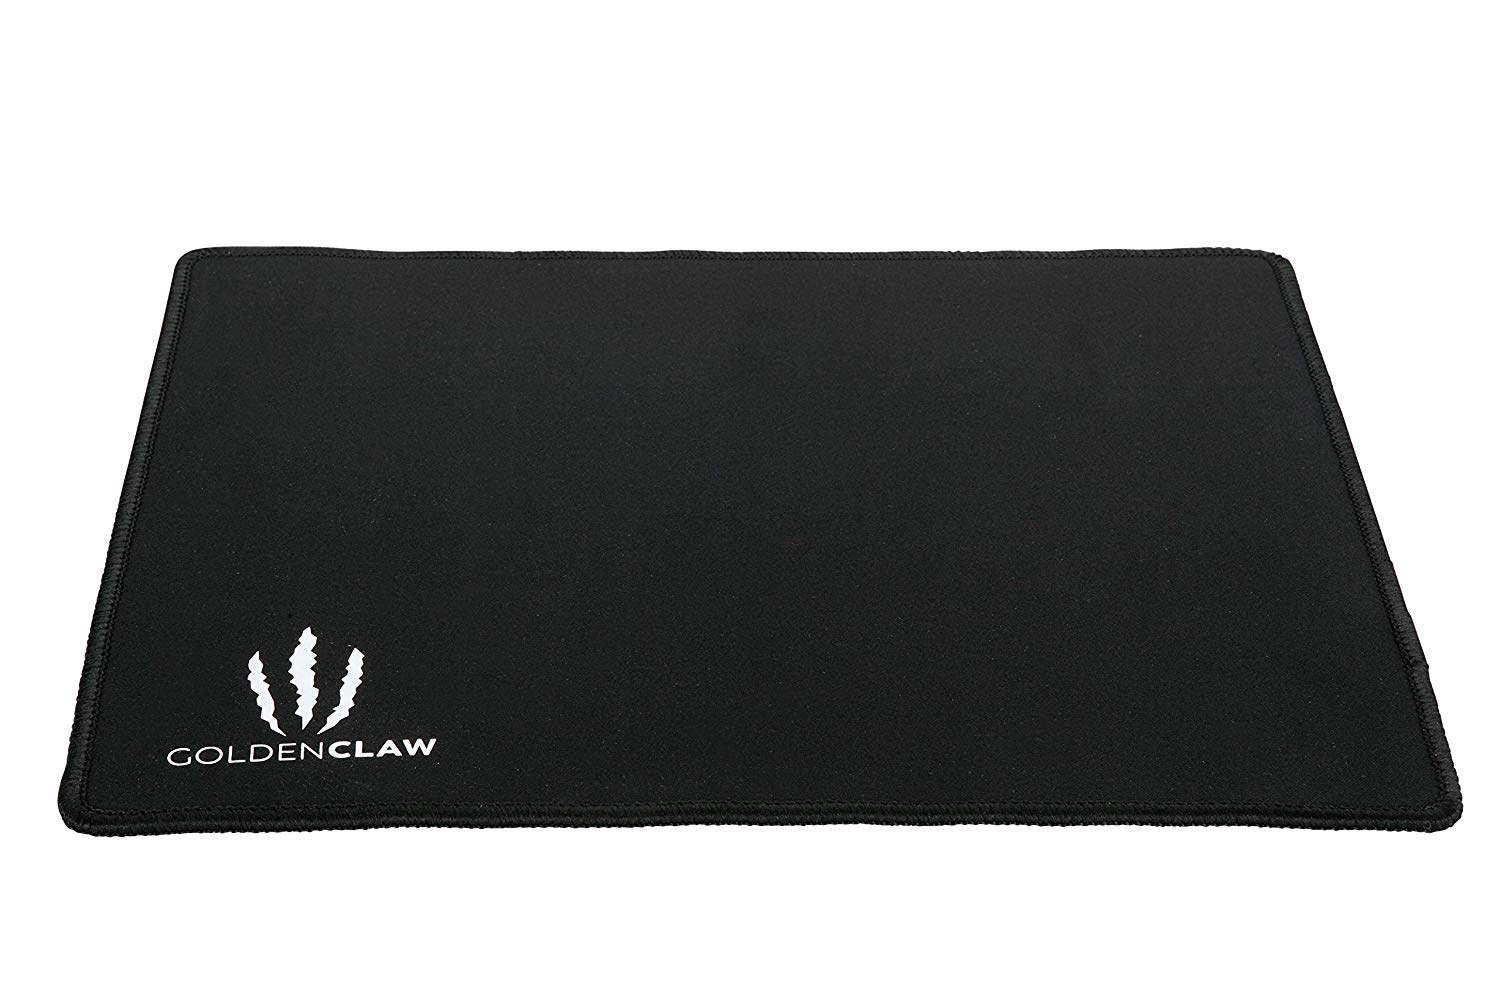 bdd1186b2b1 Best Mouse Pads 2019 [WINNERS] - The Ultimate Mouse Pad Guide